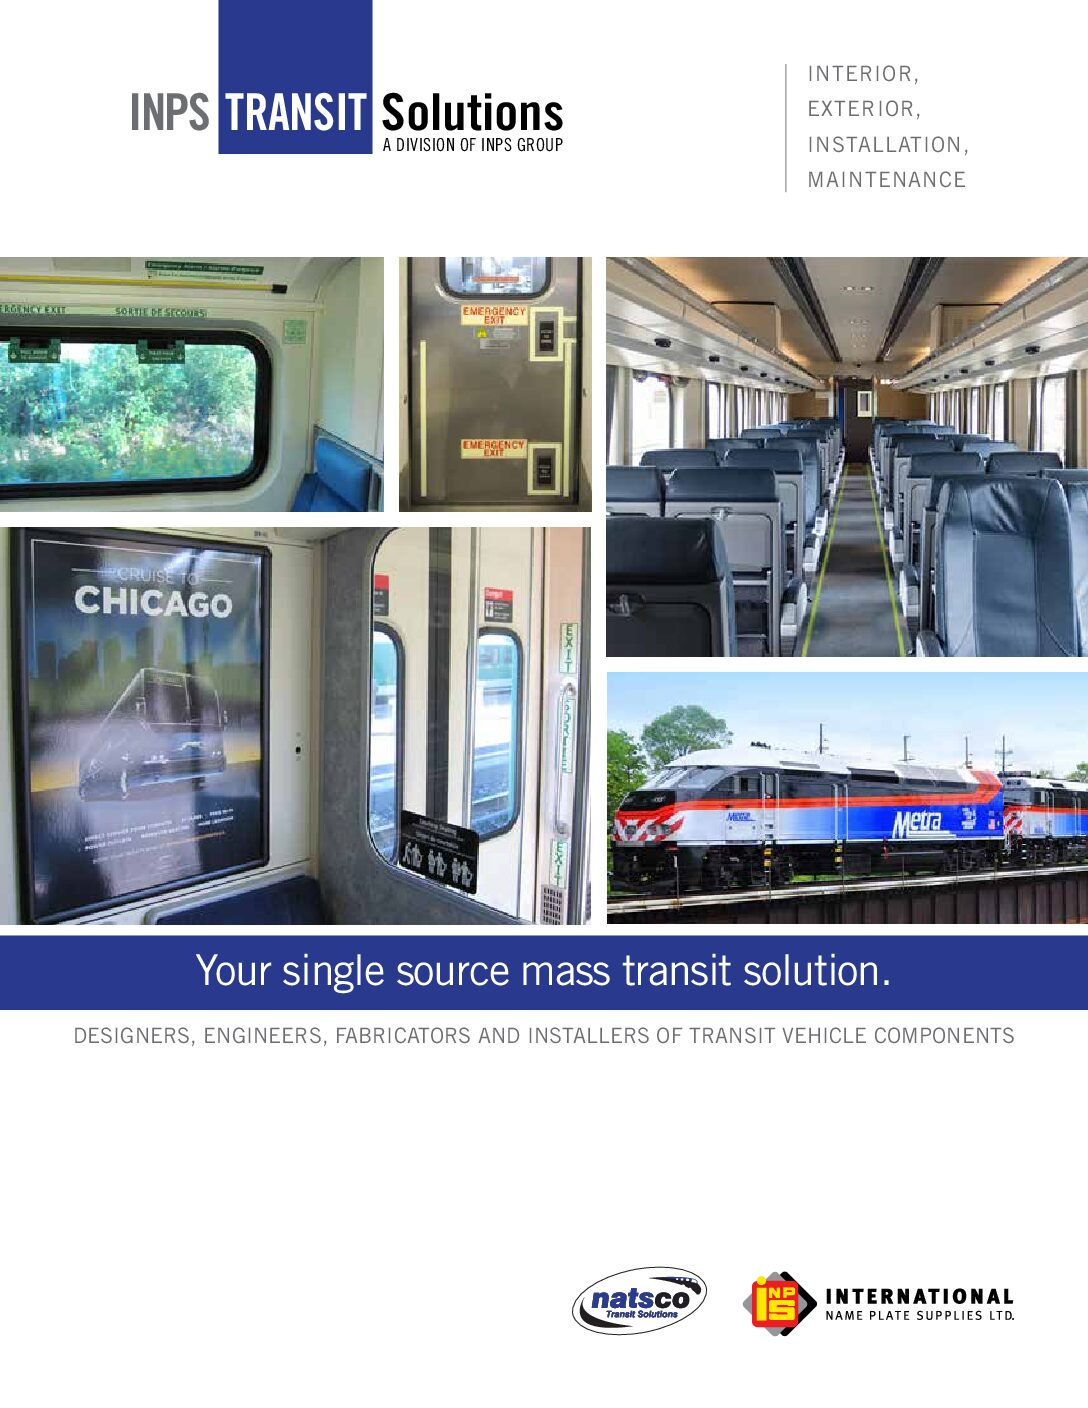 Total Transit Solutions